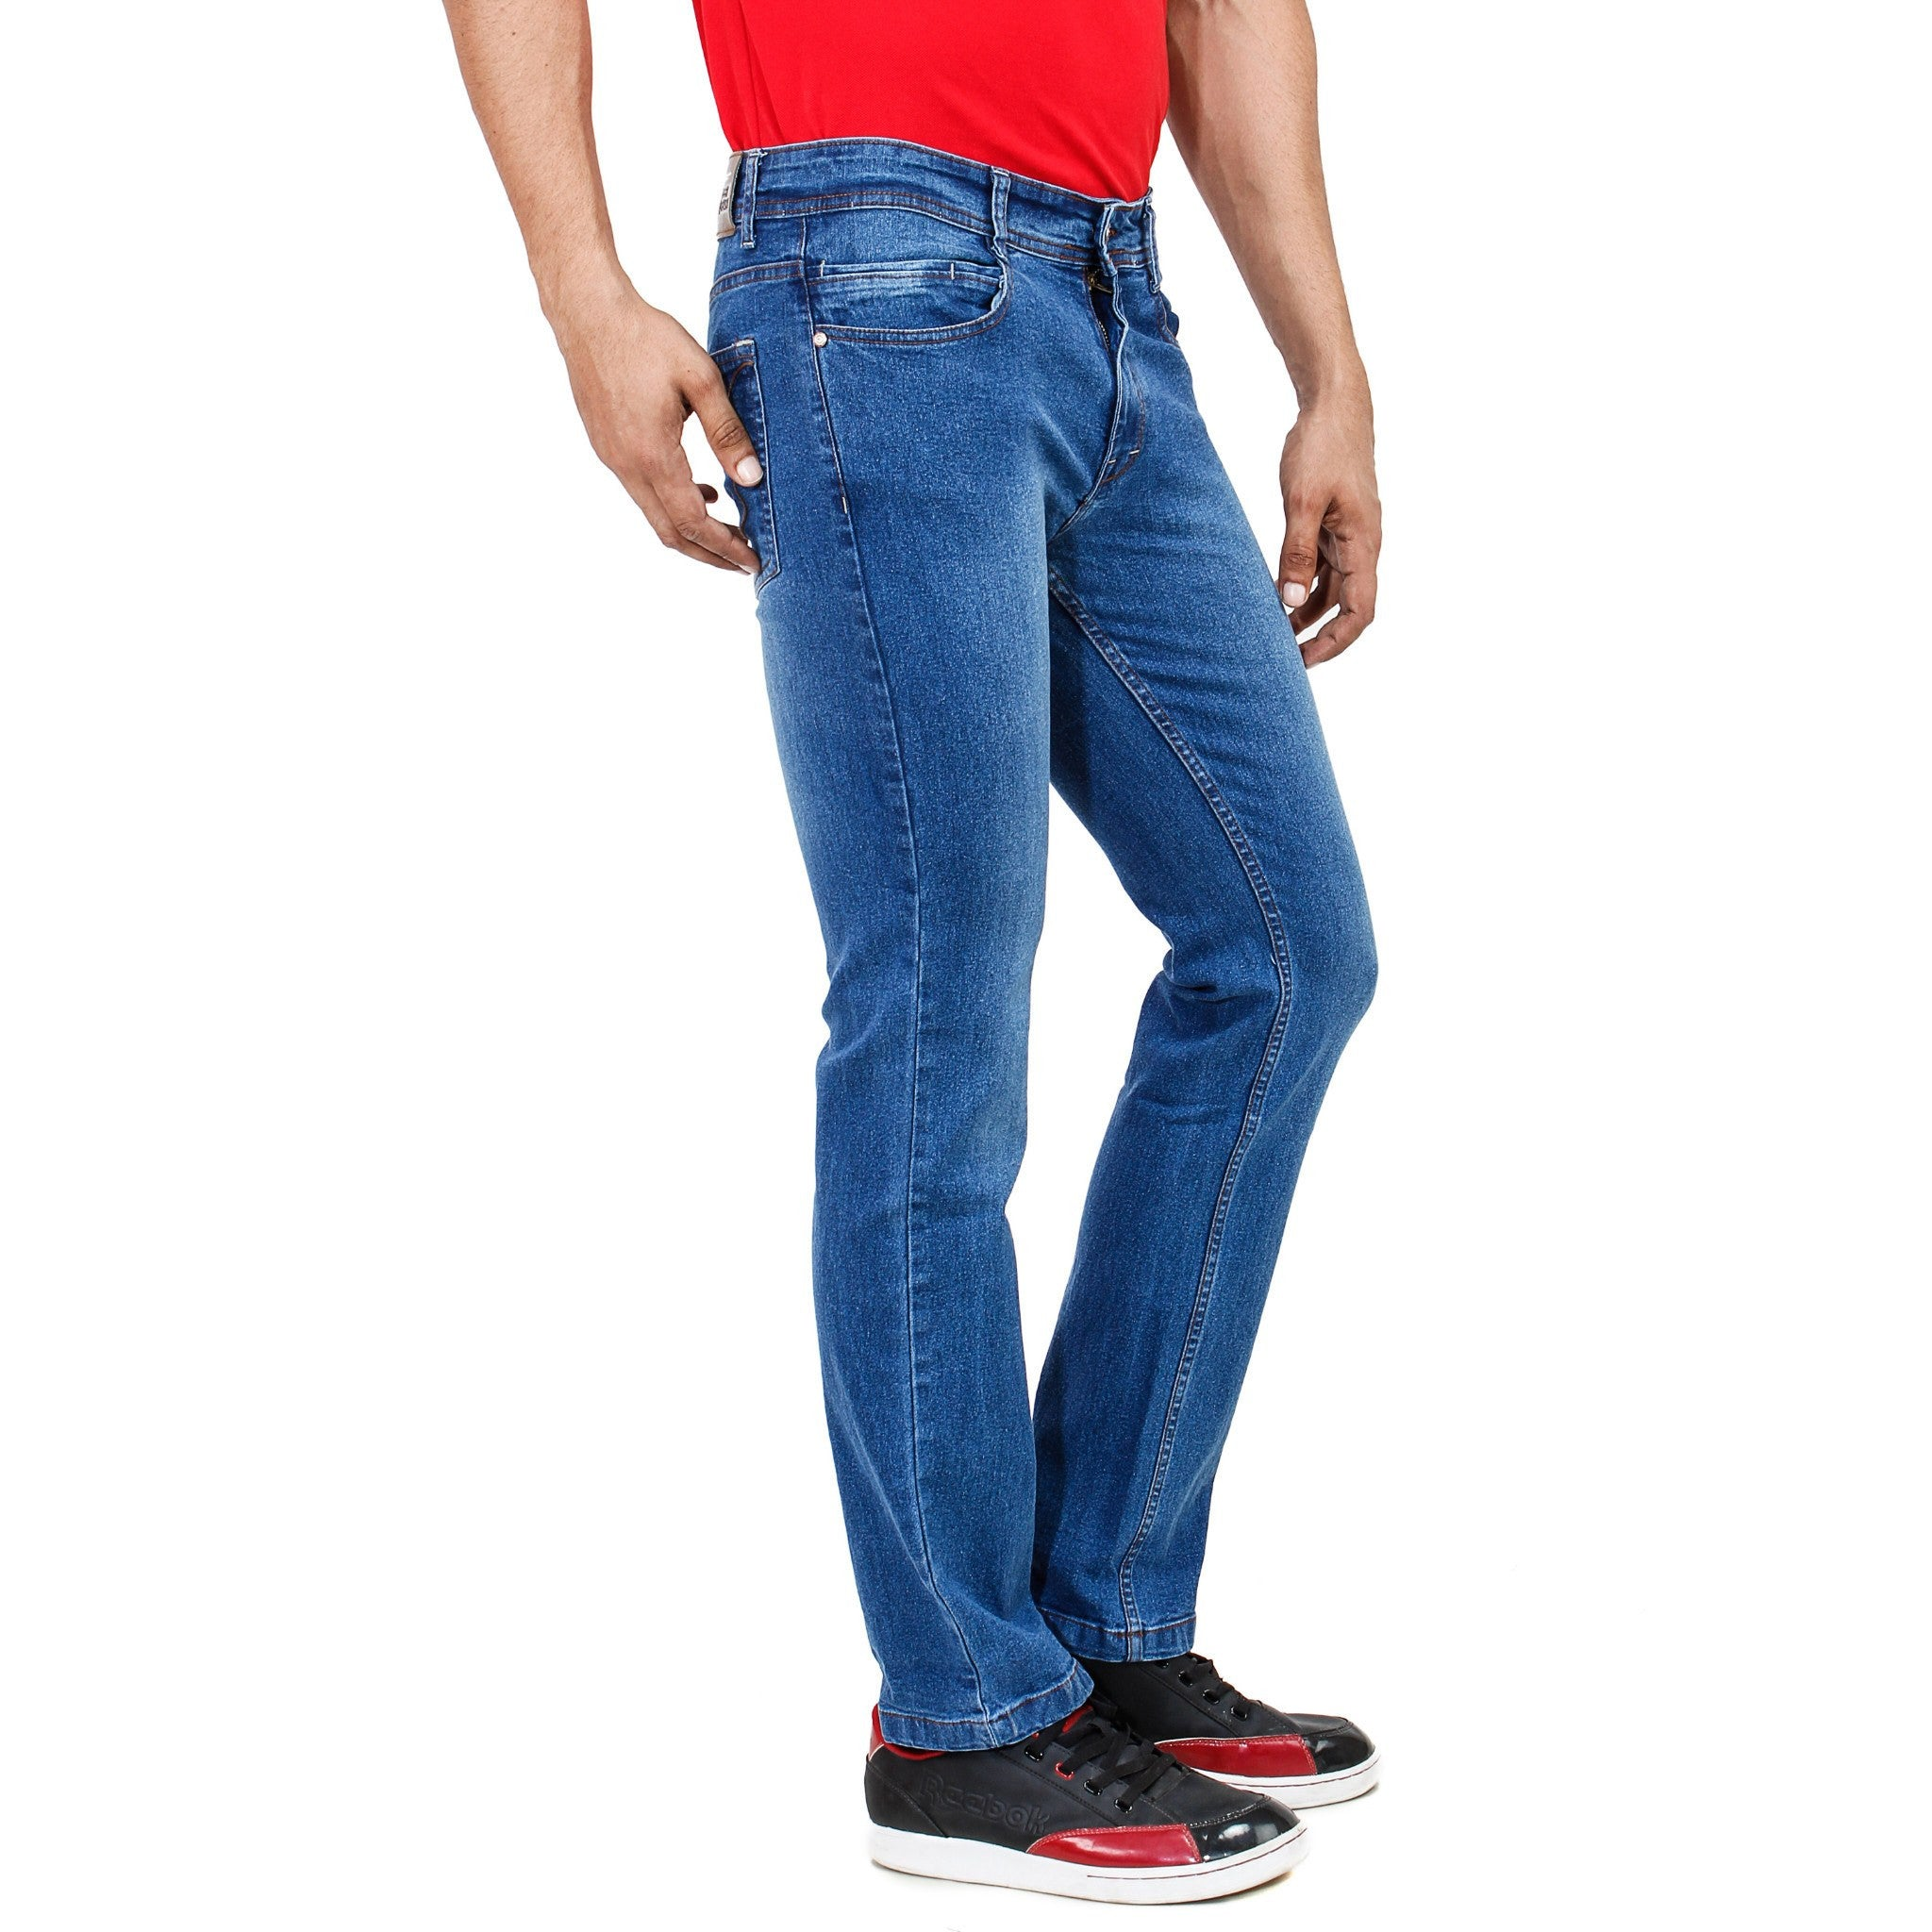 Shady Blue Jeans side view